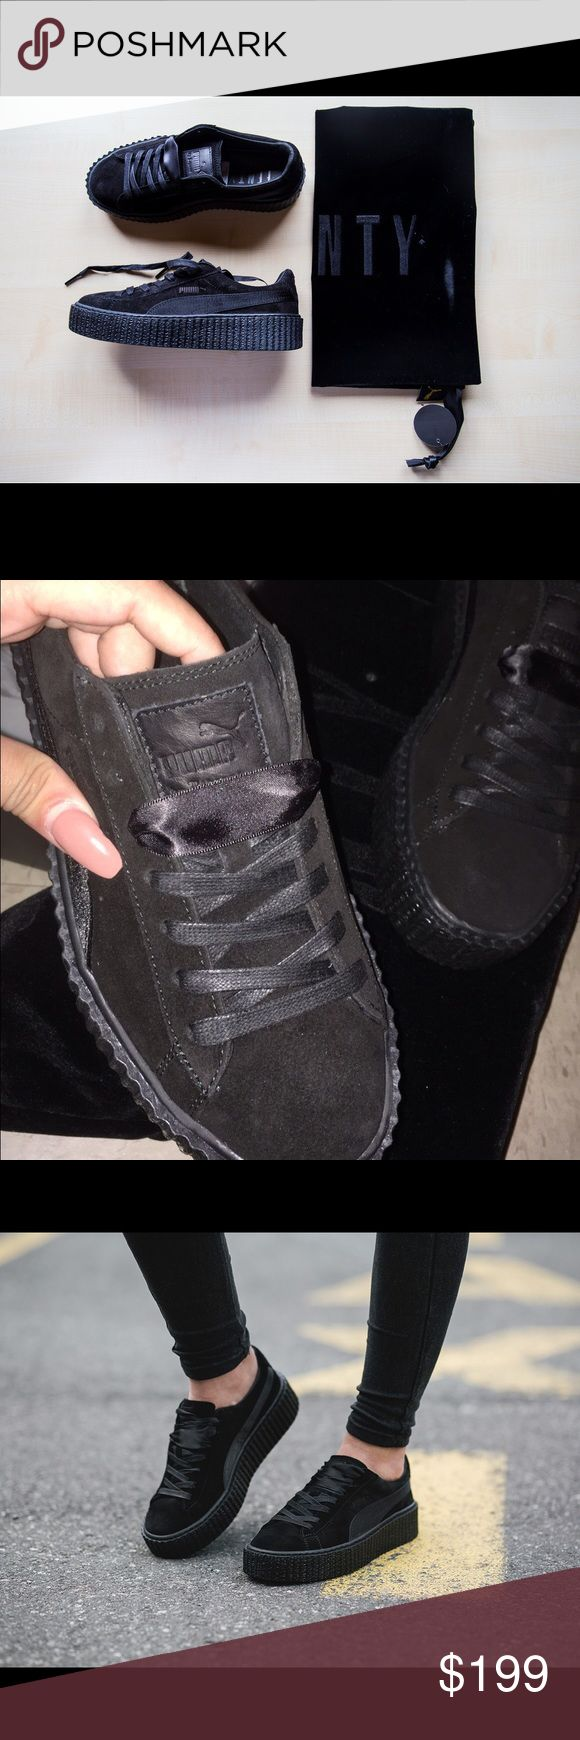 Rihanna Fenty Puma Creepers Black Satin 6.5 NEW Authentic!! Please see pics for receipt proof  I accept all reasonable offers**  I'm selling because the Puma store didn't have a size 6 so I had to go up half a size. I went the day they were released in the US. They sold out so fast!  I'm also selling the creeper in black & white size US 8.5 also with receipt proof. Bought online in wrong size. I bought a UK 6 instead of a US 6 Puma Shoes Sneakers